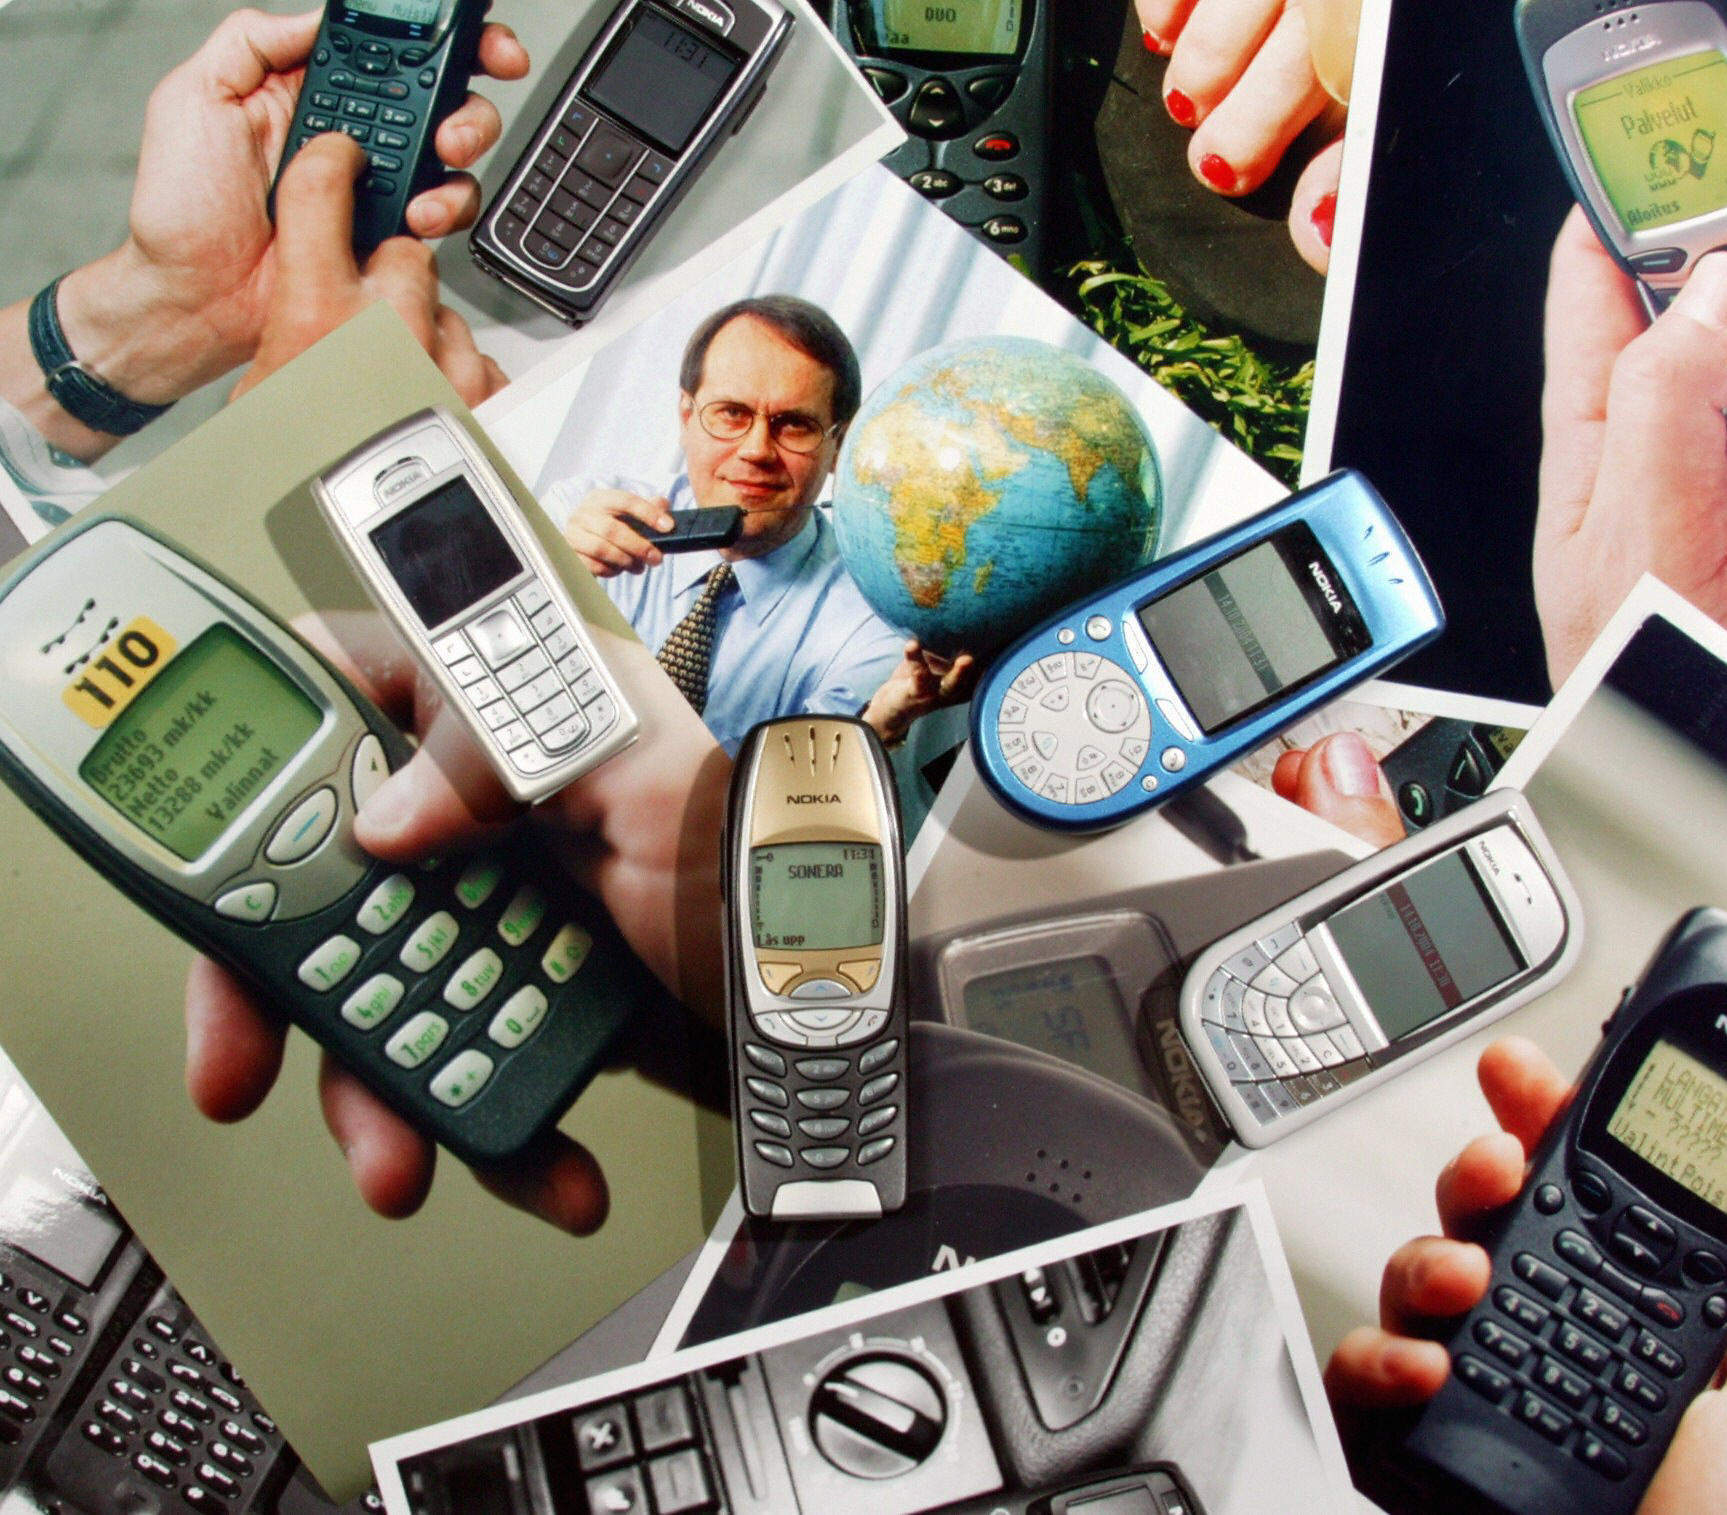 Ed Smith: Why you should give up your smartphone